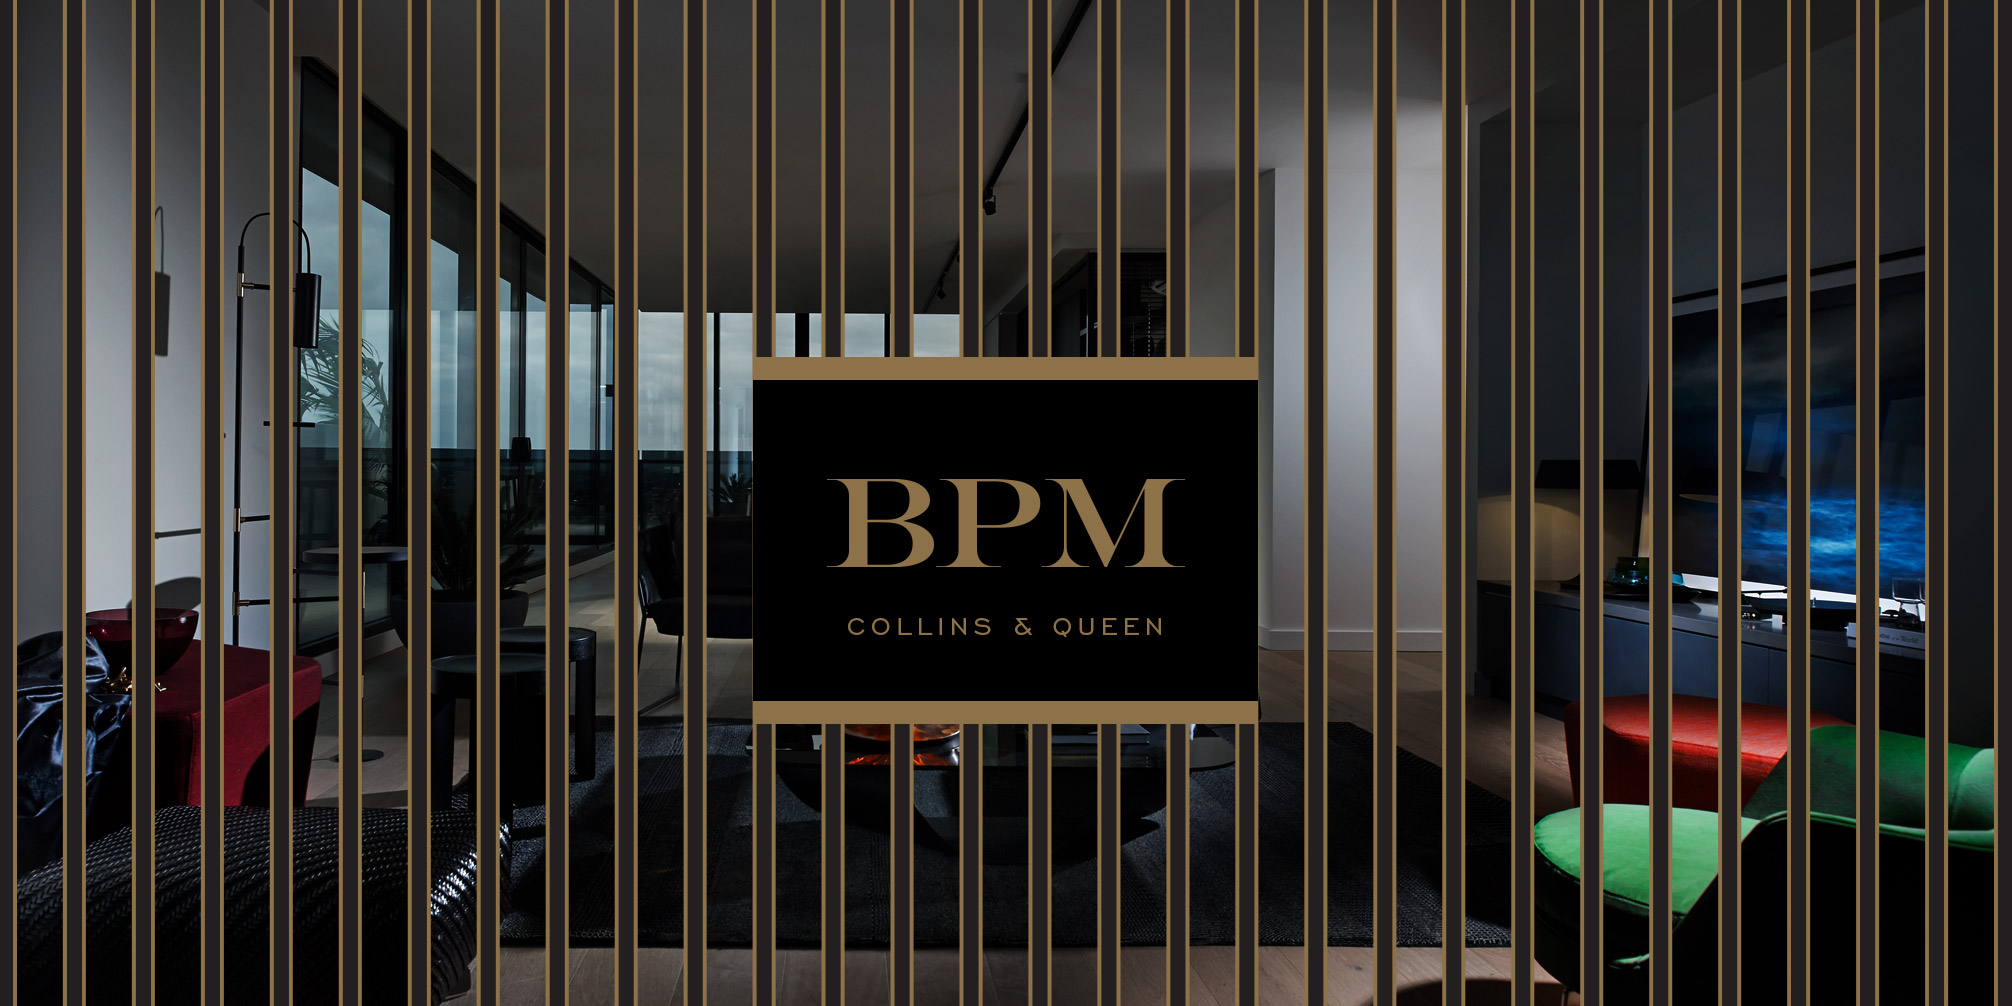 BPMCORP CORP BPM PROPERTY DEVELOPMENT MANAGEMENT CONSTRUCTION JONATHAN HALLINAN INVESTMENT MELBOURNE BRISBANE REAL ESTATE APARTMENTS ENQUIRY OFF PLAN BOUTIQUE PROJECT